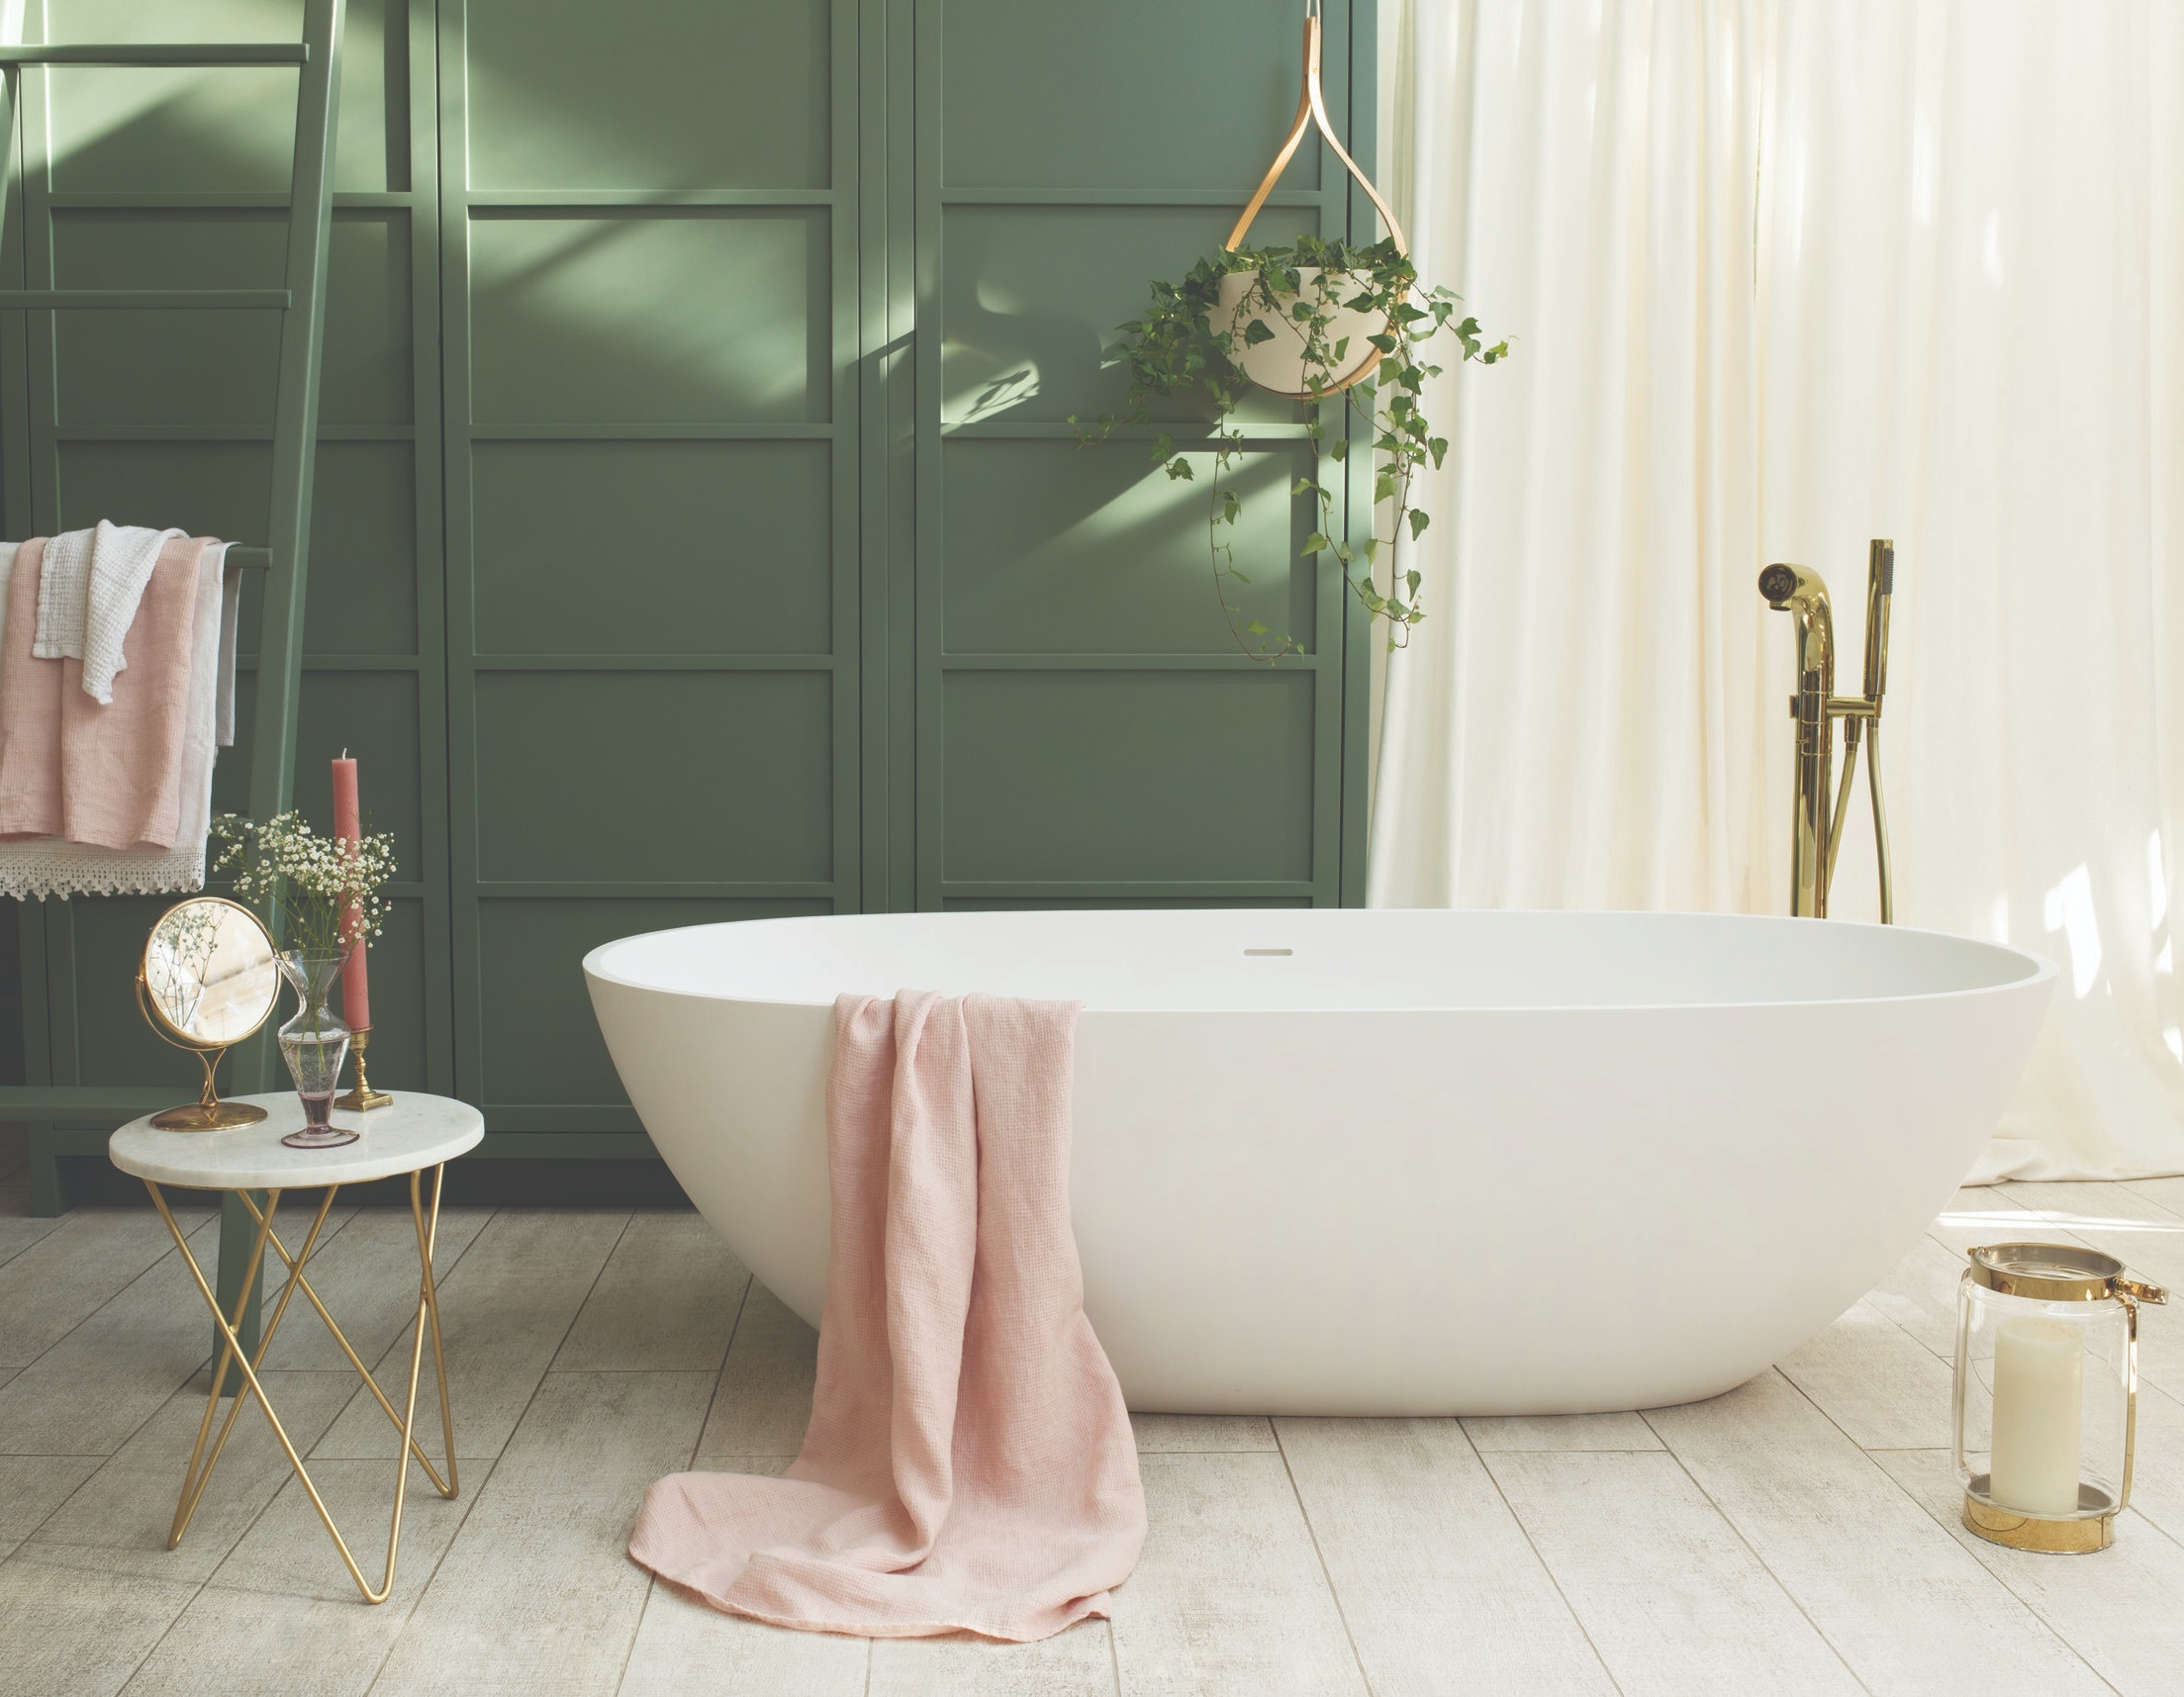 Waters Baths of Ashbourne - Waters Baths of Ashbourne are a fast-growing brand, specialising in designing inspirational, innovative, and high-quality baths and sanitary-ware from their base in the heart of the picturesque Peak District.